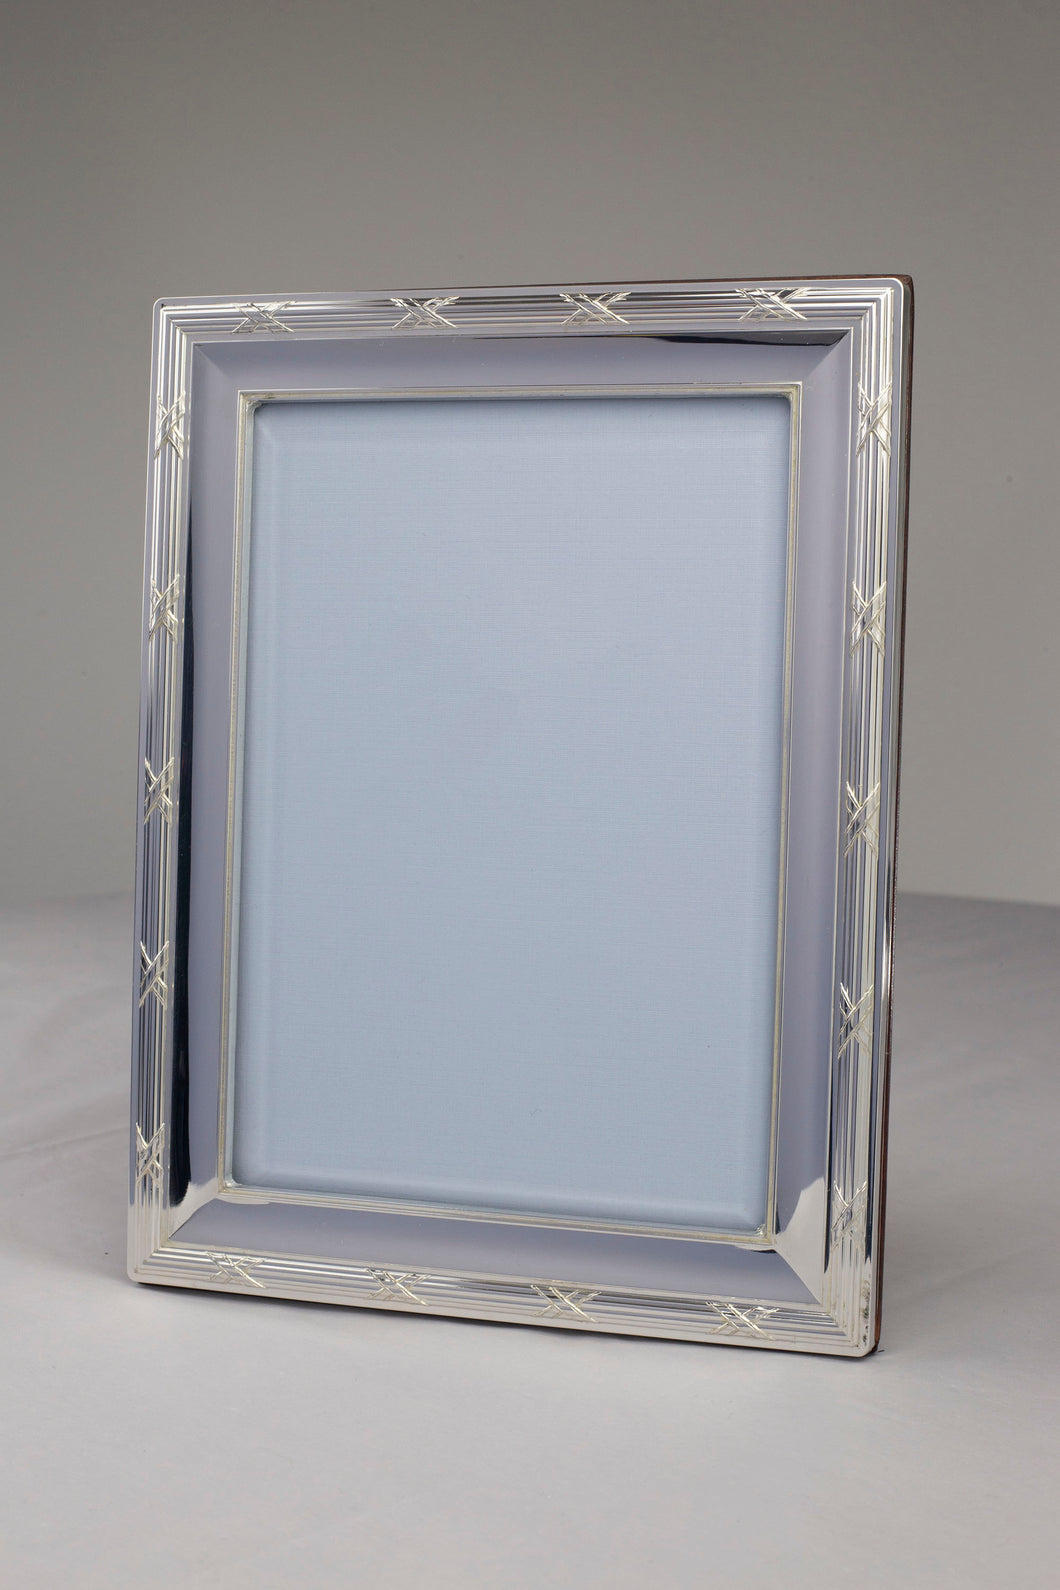 Silver Ribbon and Reeds Frame- Velveteen Back 3.5 x 5